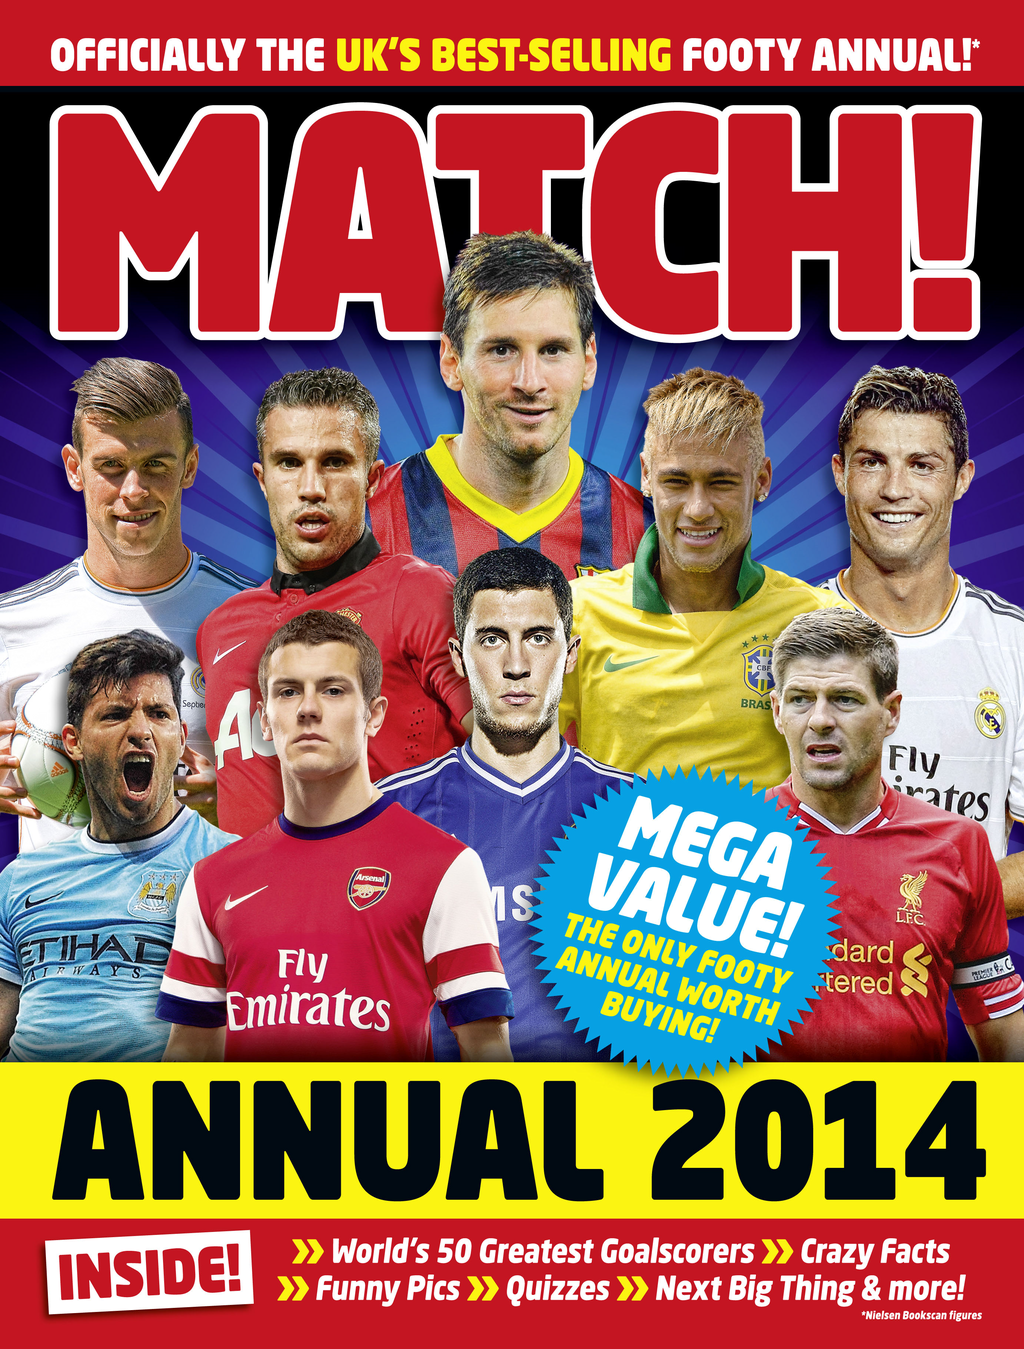 Match Annual 2014 From the Makers of the UK's Bestselling Football Magazine